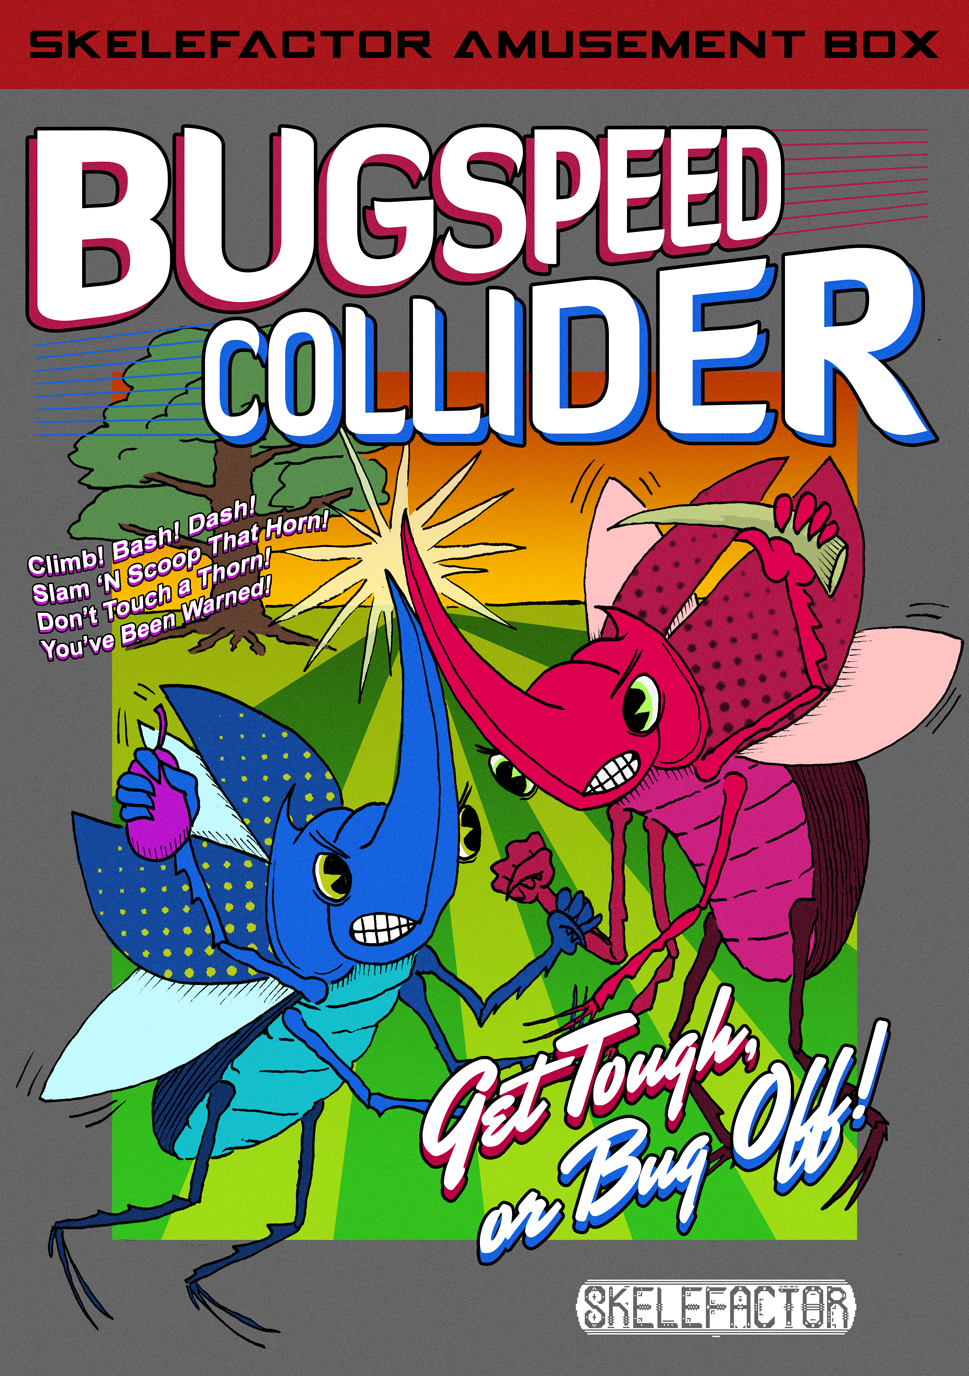 Bugspeed Collider Box Art    Photoshop   Part of the  Bugspeed Collider  project for  Skelefactor Games . Illustrated and inked by Brent Blalock, I did the colors, text, and final design.